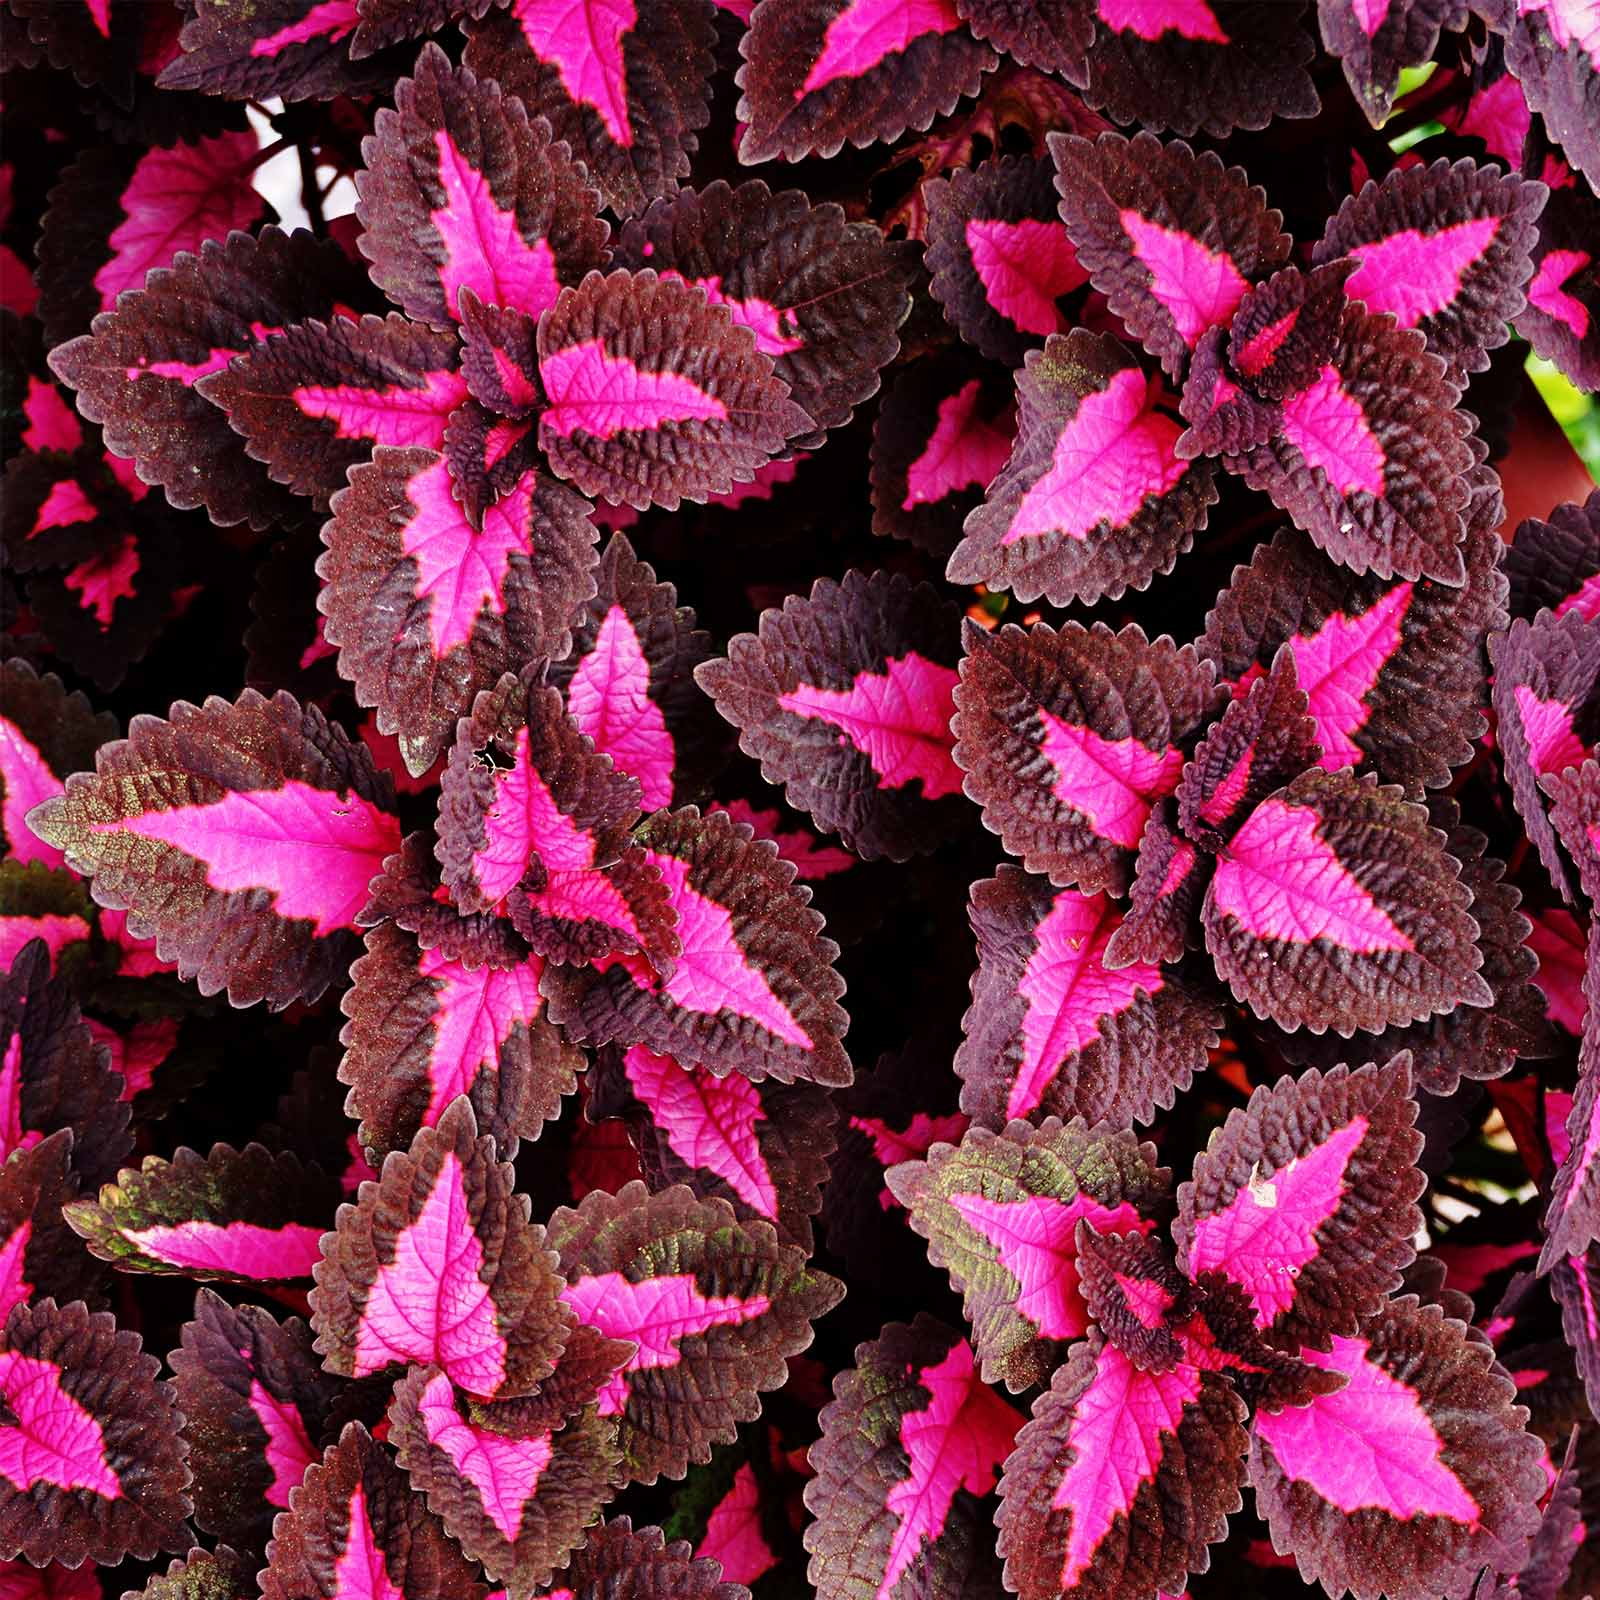 Chocolate Covered Cherry Coleus Seeds - 100 Seeds - Decorative House & Garden Plant Seeds by Mountain Valley Seed Company